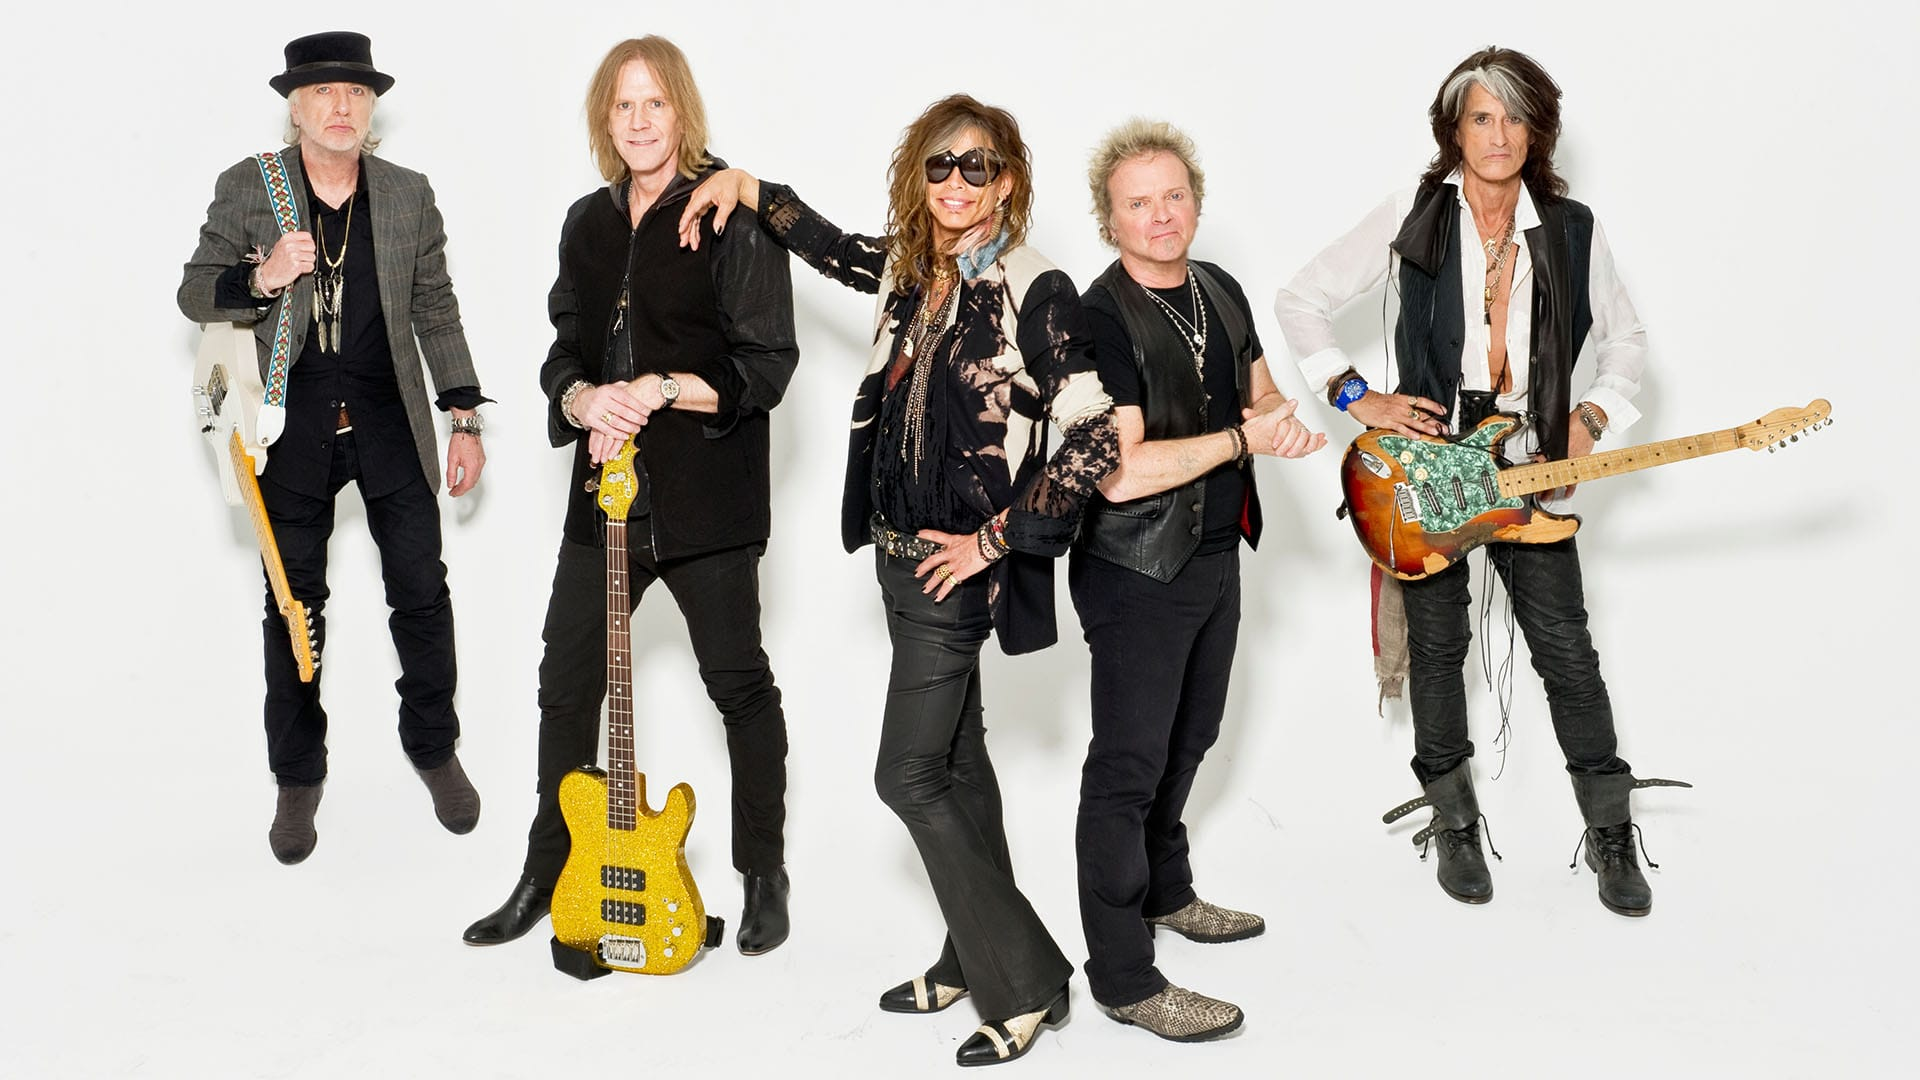 Aerosmith Wallpapers hd